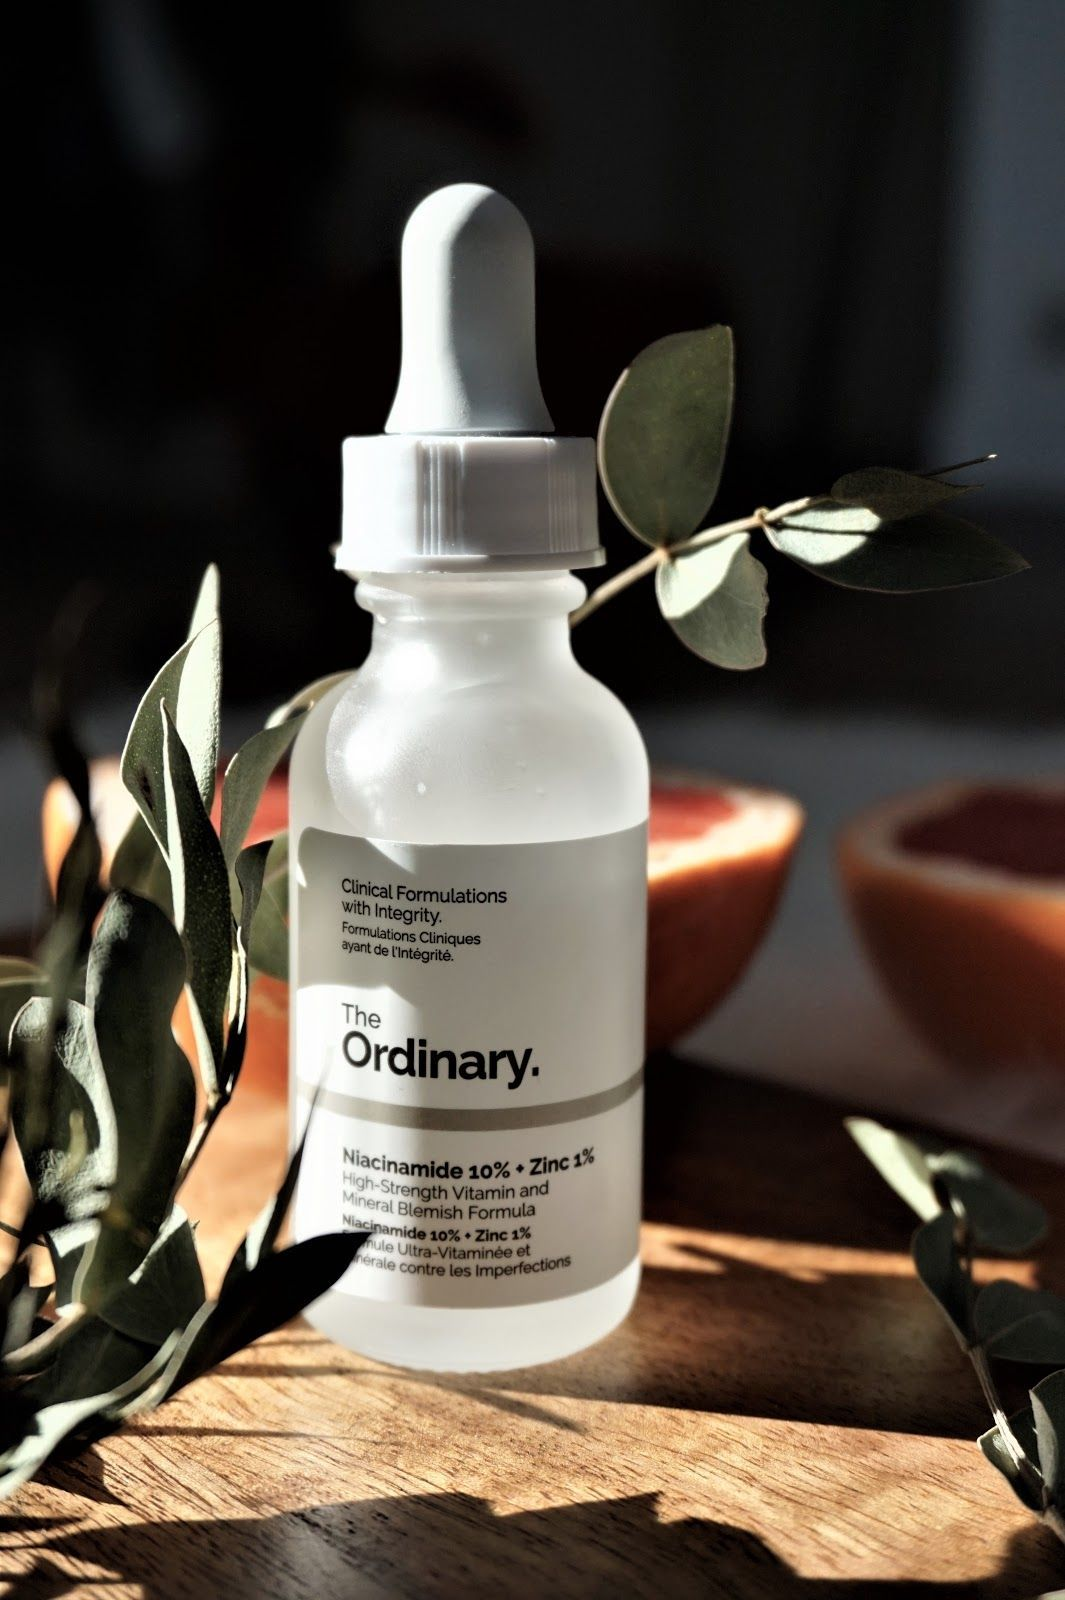 Niacinamide 10 + Zinc 1 The Ordinary theordinary in 2020